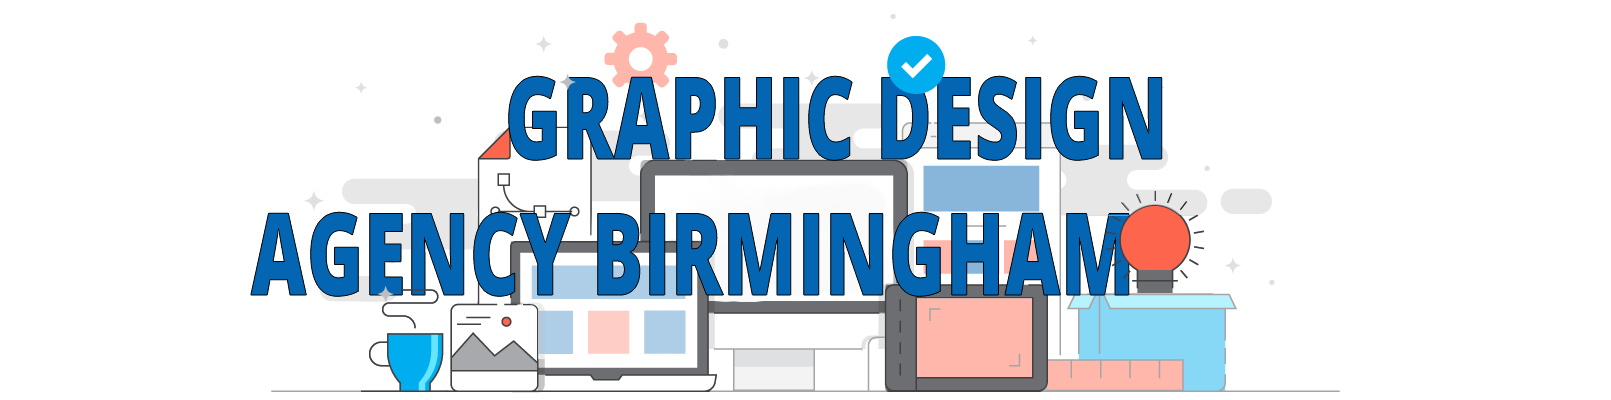 graphic design agency in birmingham for branding and marketing